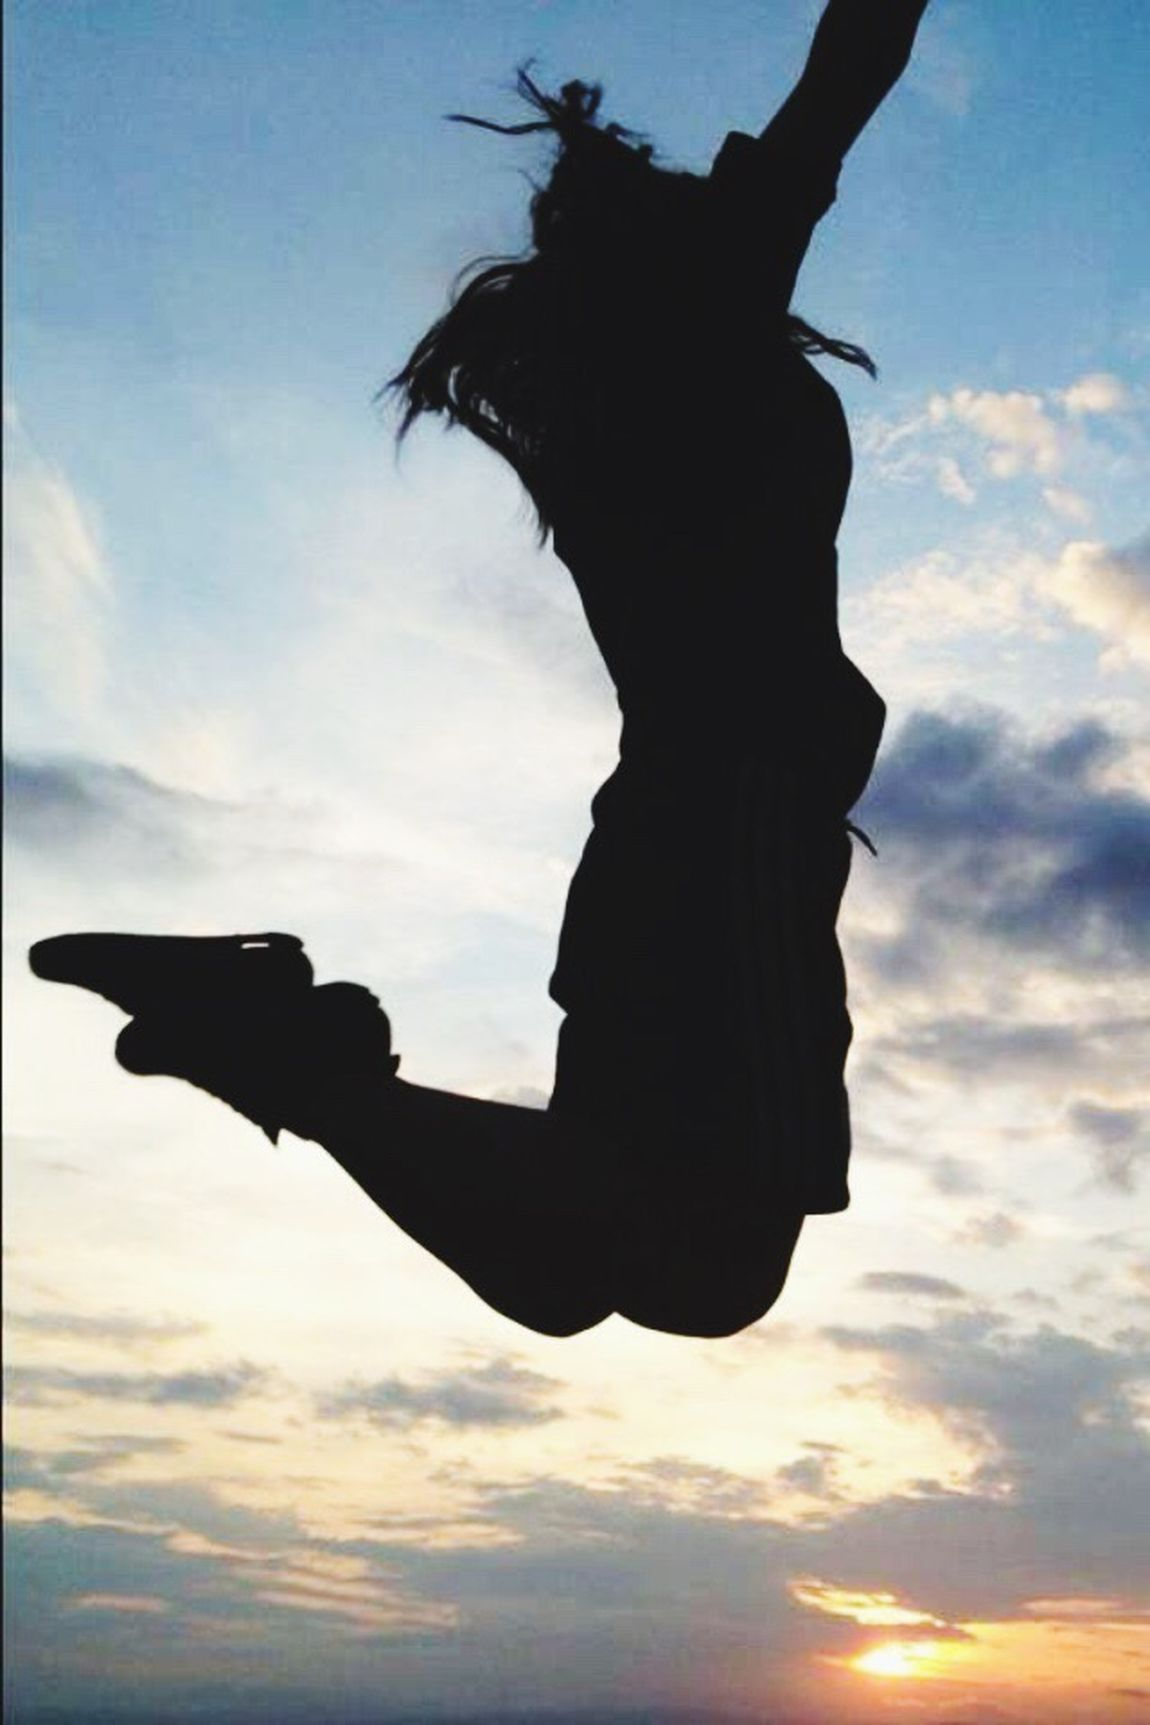 Jump Jumping Saut Ciel Nuages Contraste Lumières Soleil Poleymieux Alternative Fitness Sport Feminine  Need For Speed Photography Nice Atmosphere My Commute